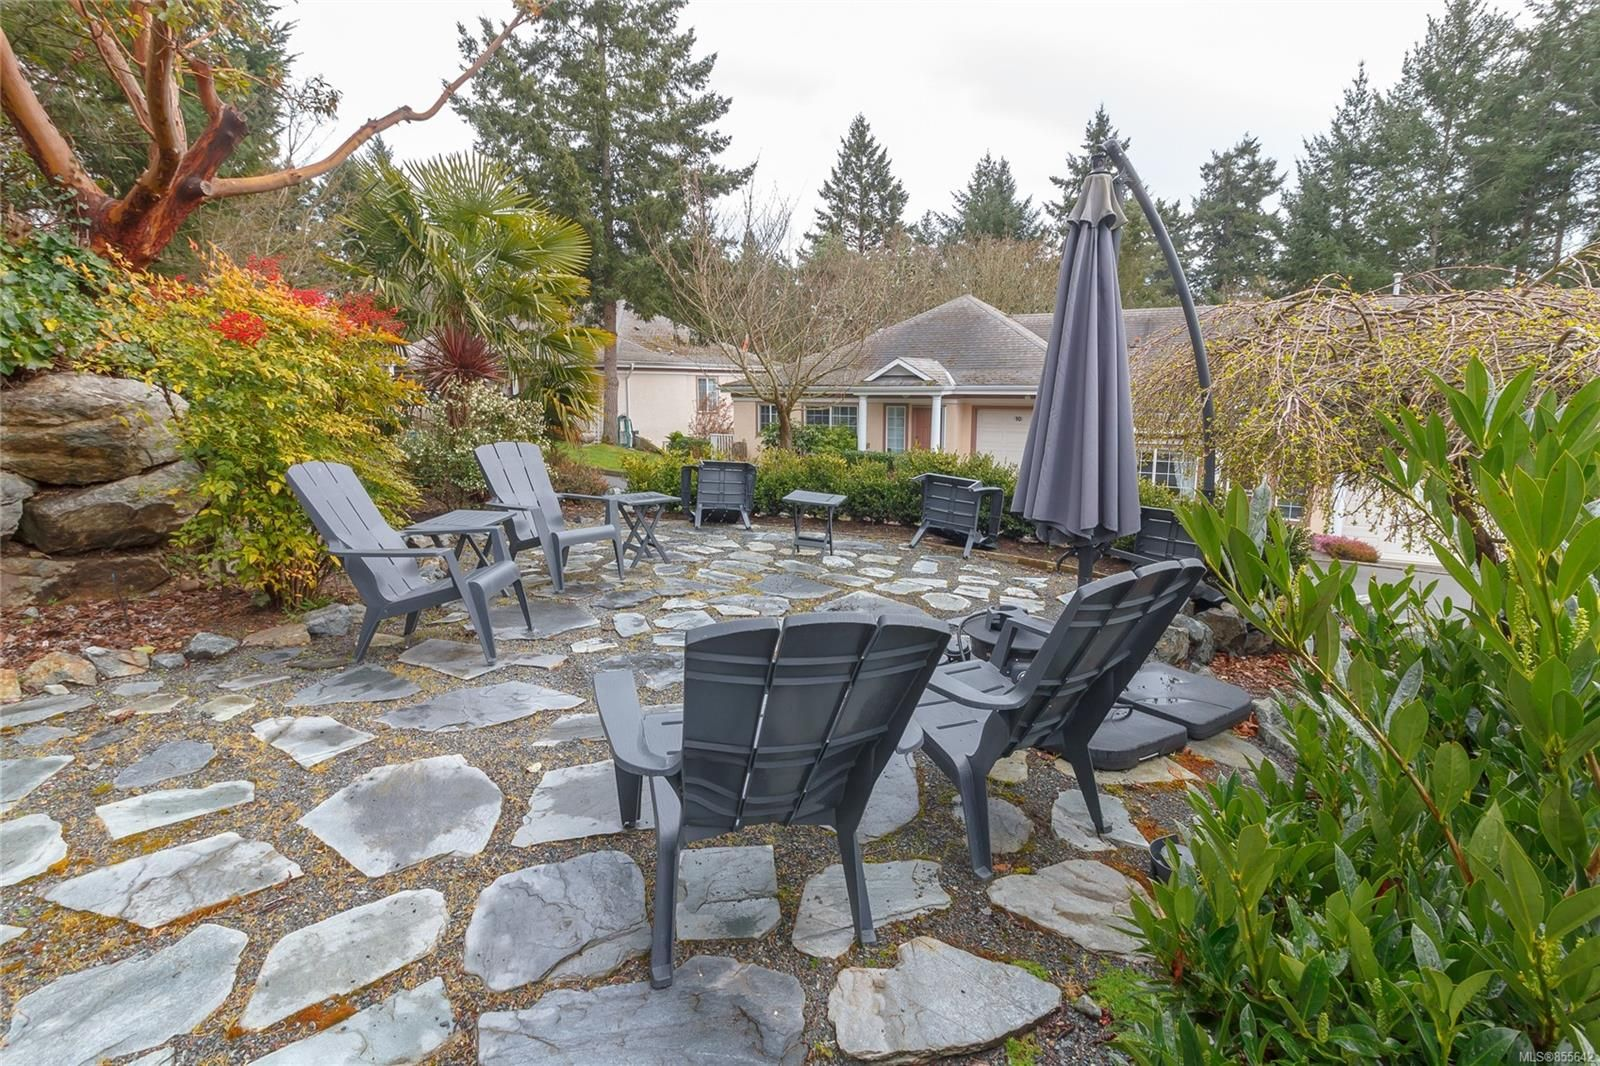 Photo 32: Photos: 52 14 Erskine Lane in : VR Hospital Row/Townhouse for sale (View Royal)  : MLS®# 855642